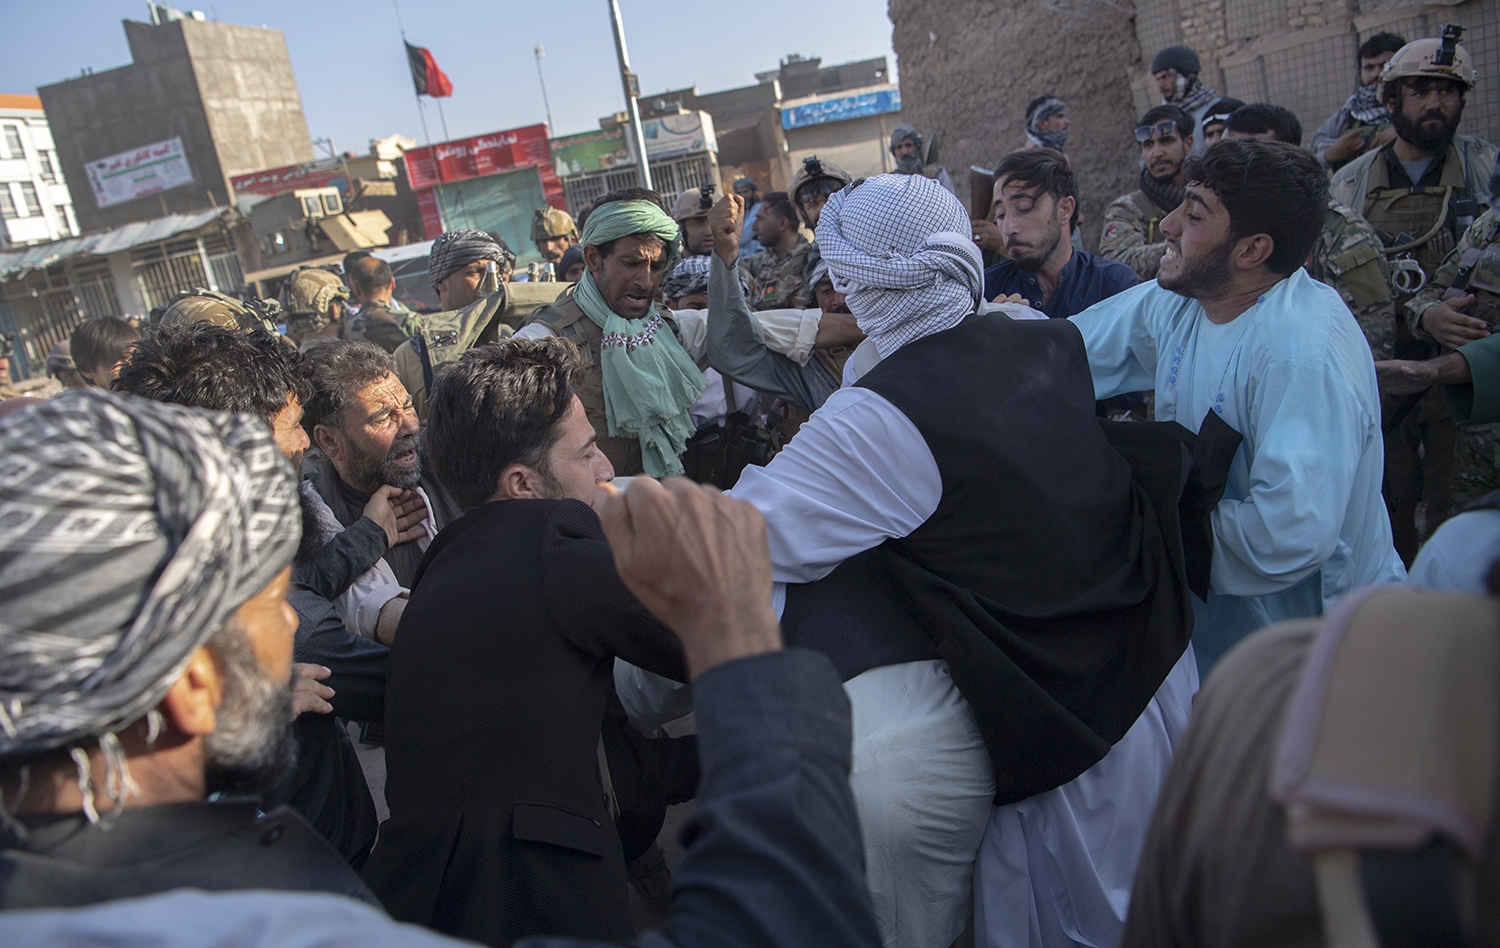 Militia members of Ismail Khan's forces beat an unseen man who they claim is a Taliban insurgent or sympathizer during a clash inside Herat city on Aug. 2.